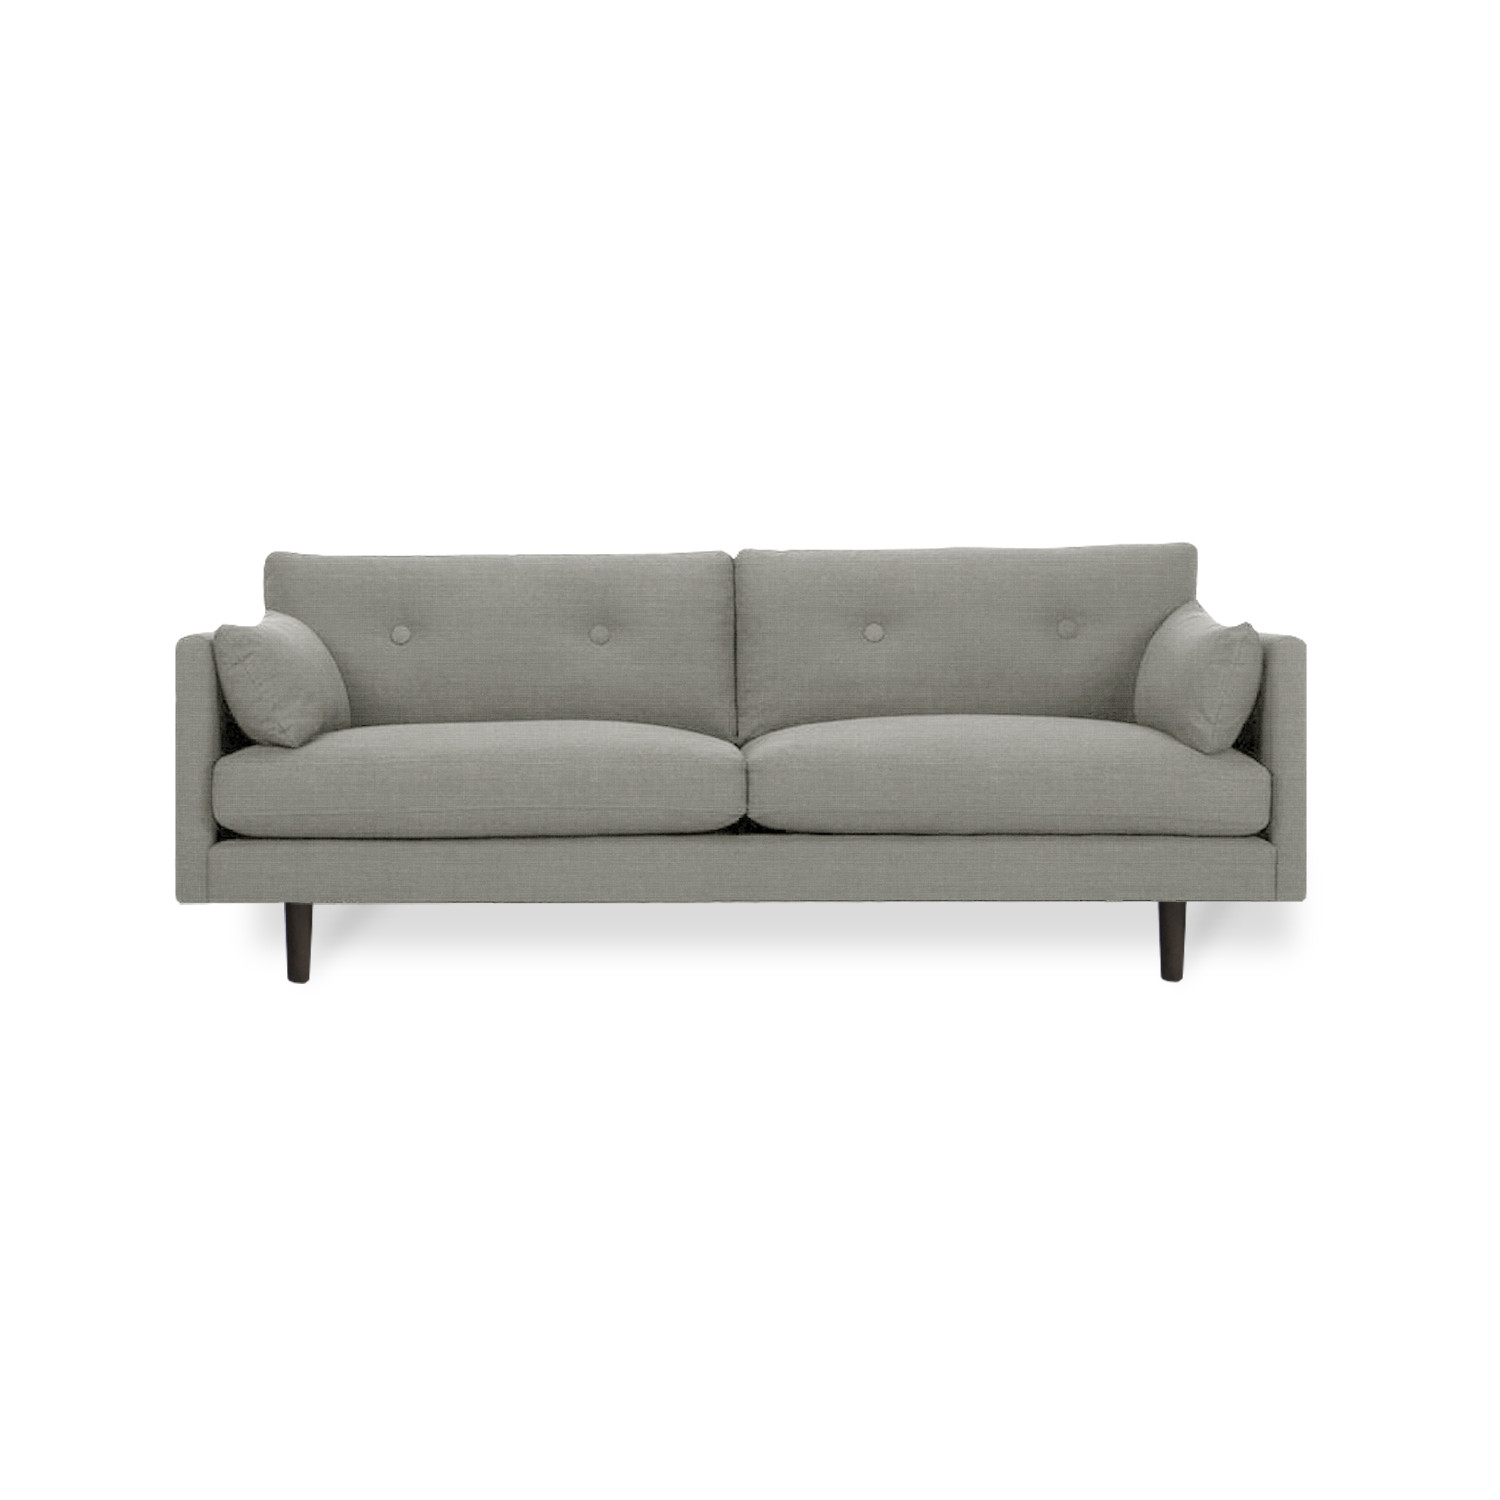 2 seater sofa singapore friheten bed dimensions londale 3 beige furniture and home décor